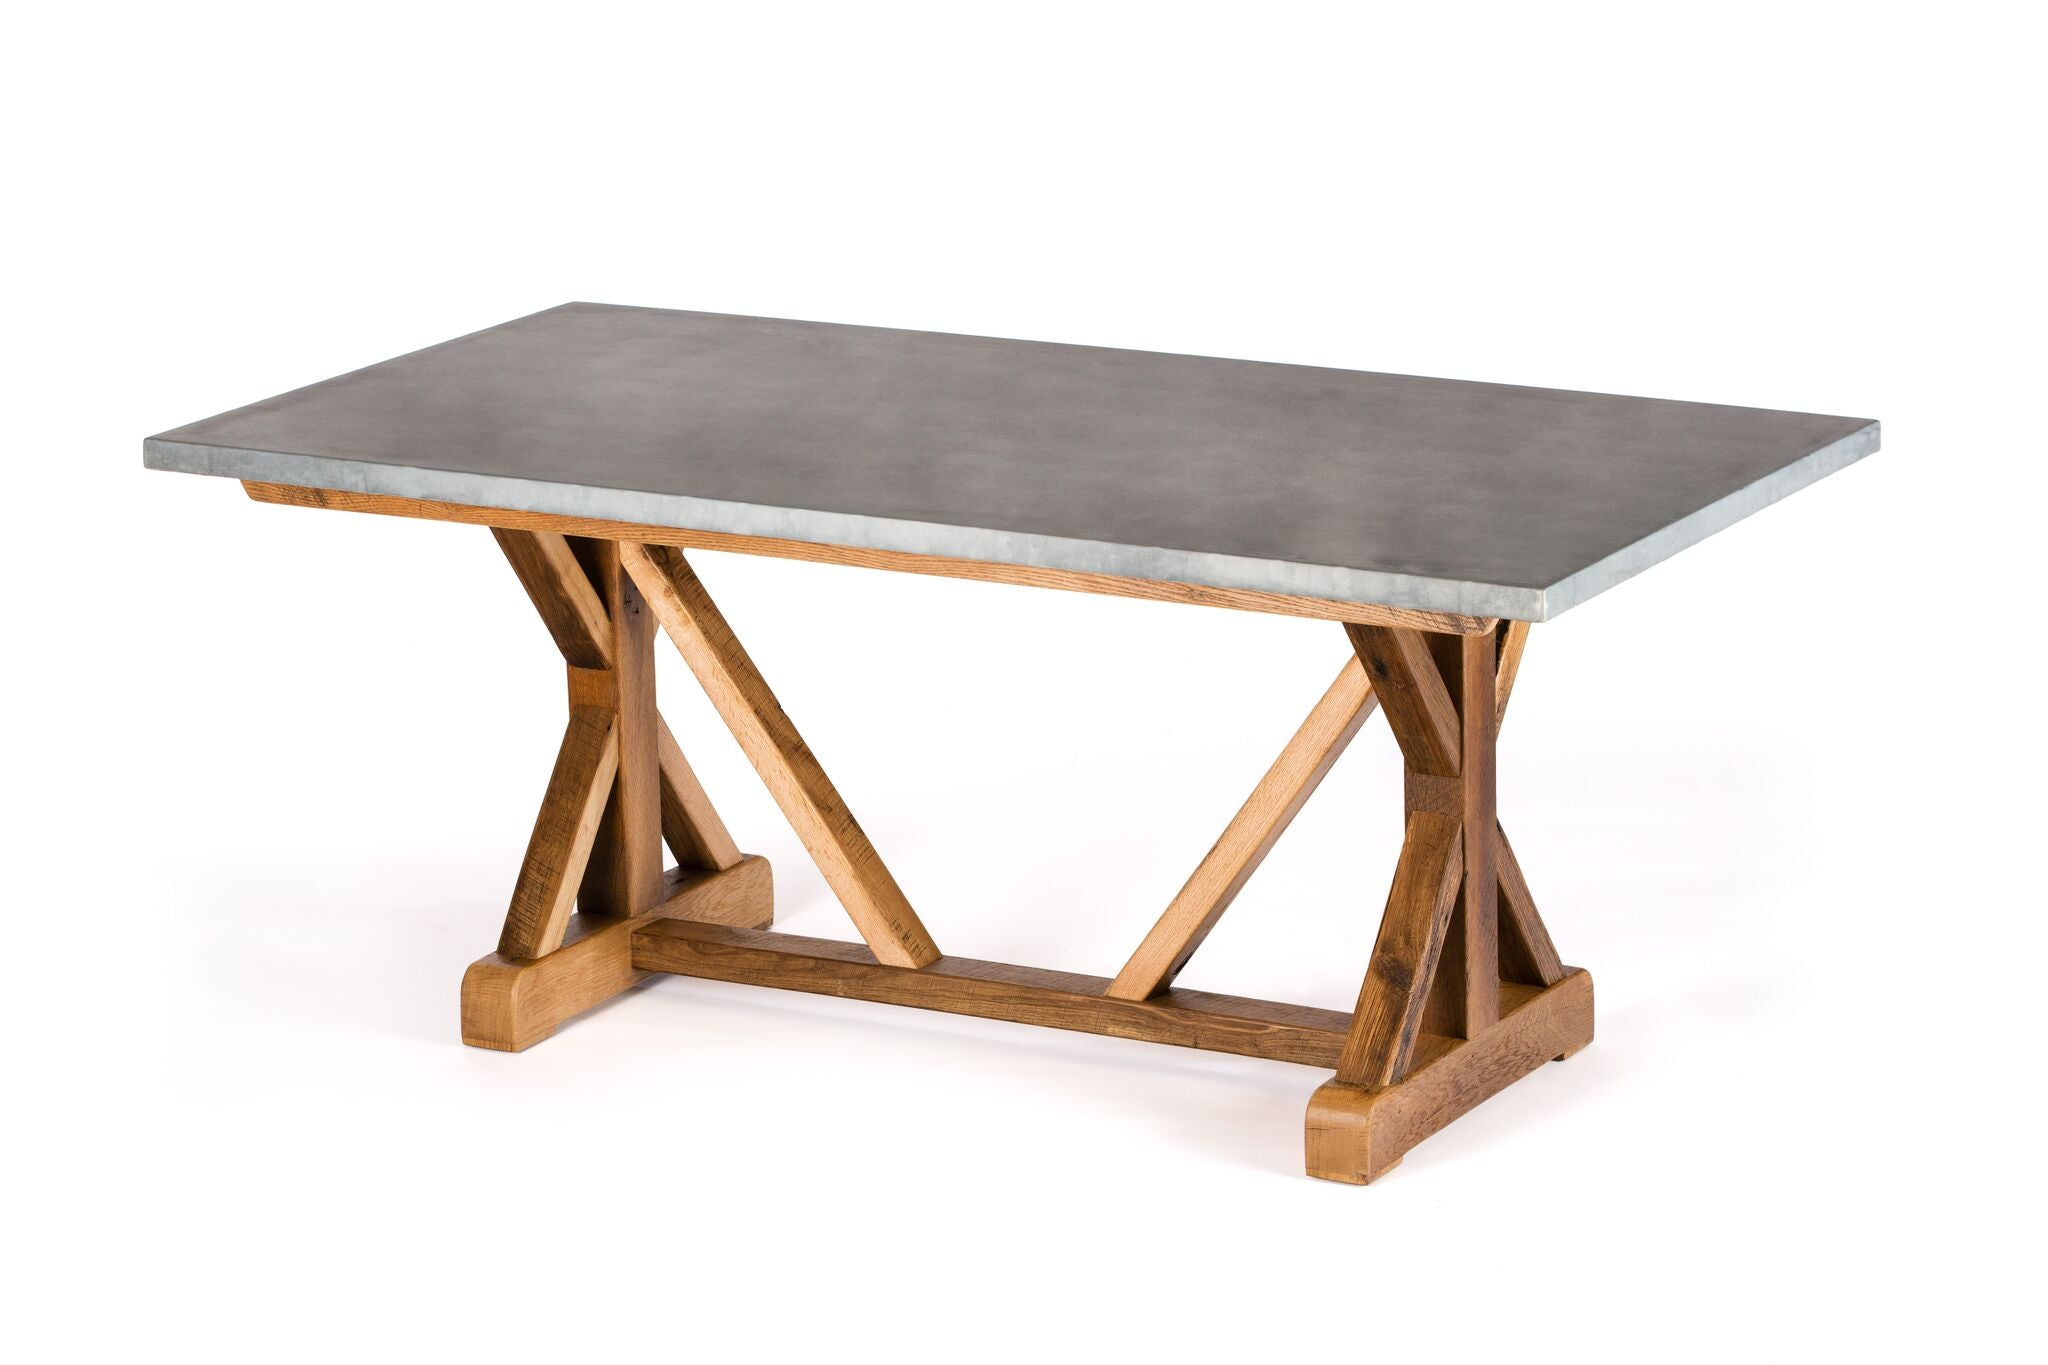 "Zinc Rectangular Table | French Trestle Table | BLACKENED BRONZE | Weathered Grey on Reclaimed Oak | CUSTOM SIZE 96""L 40""W 30""H 